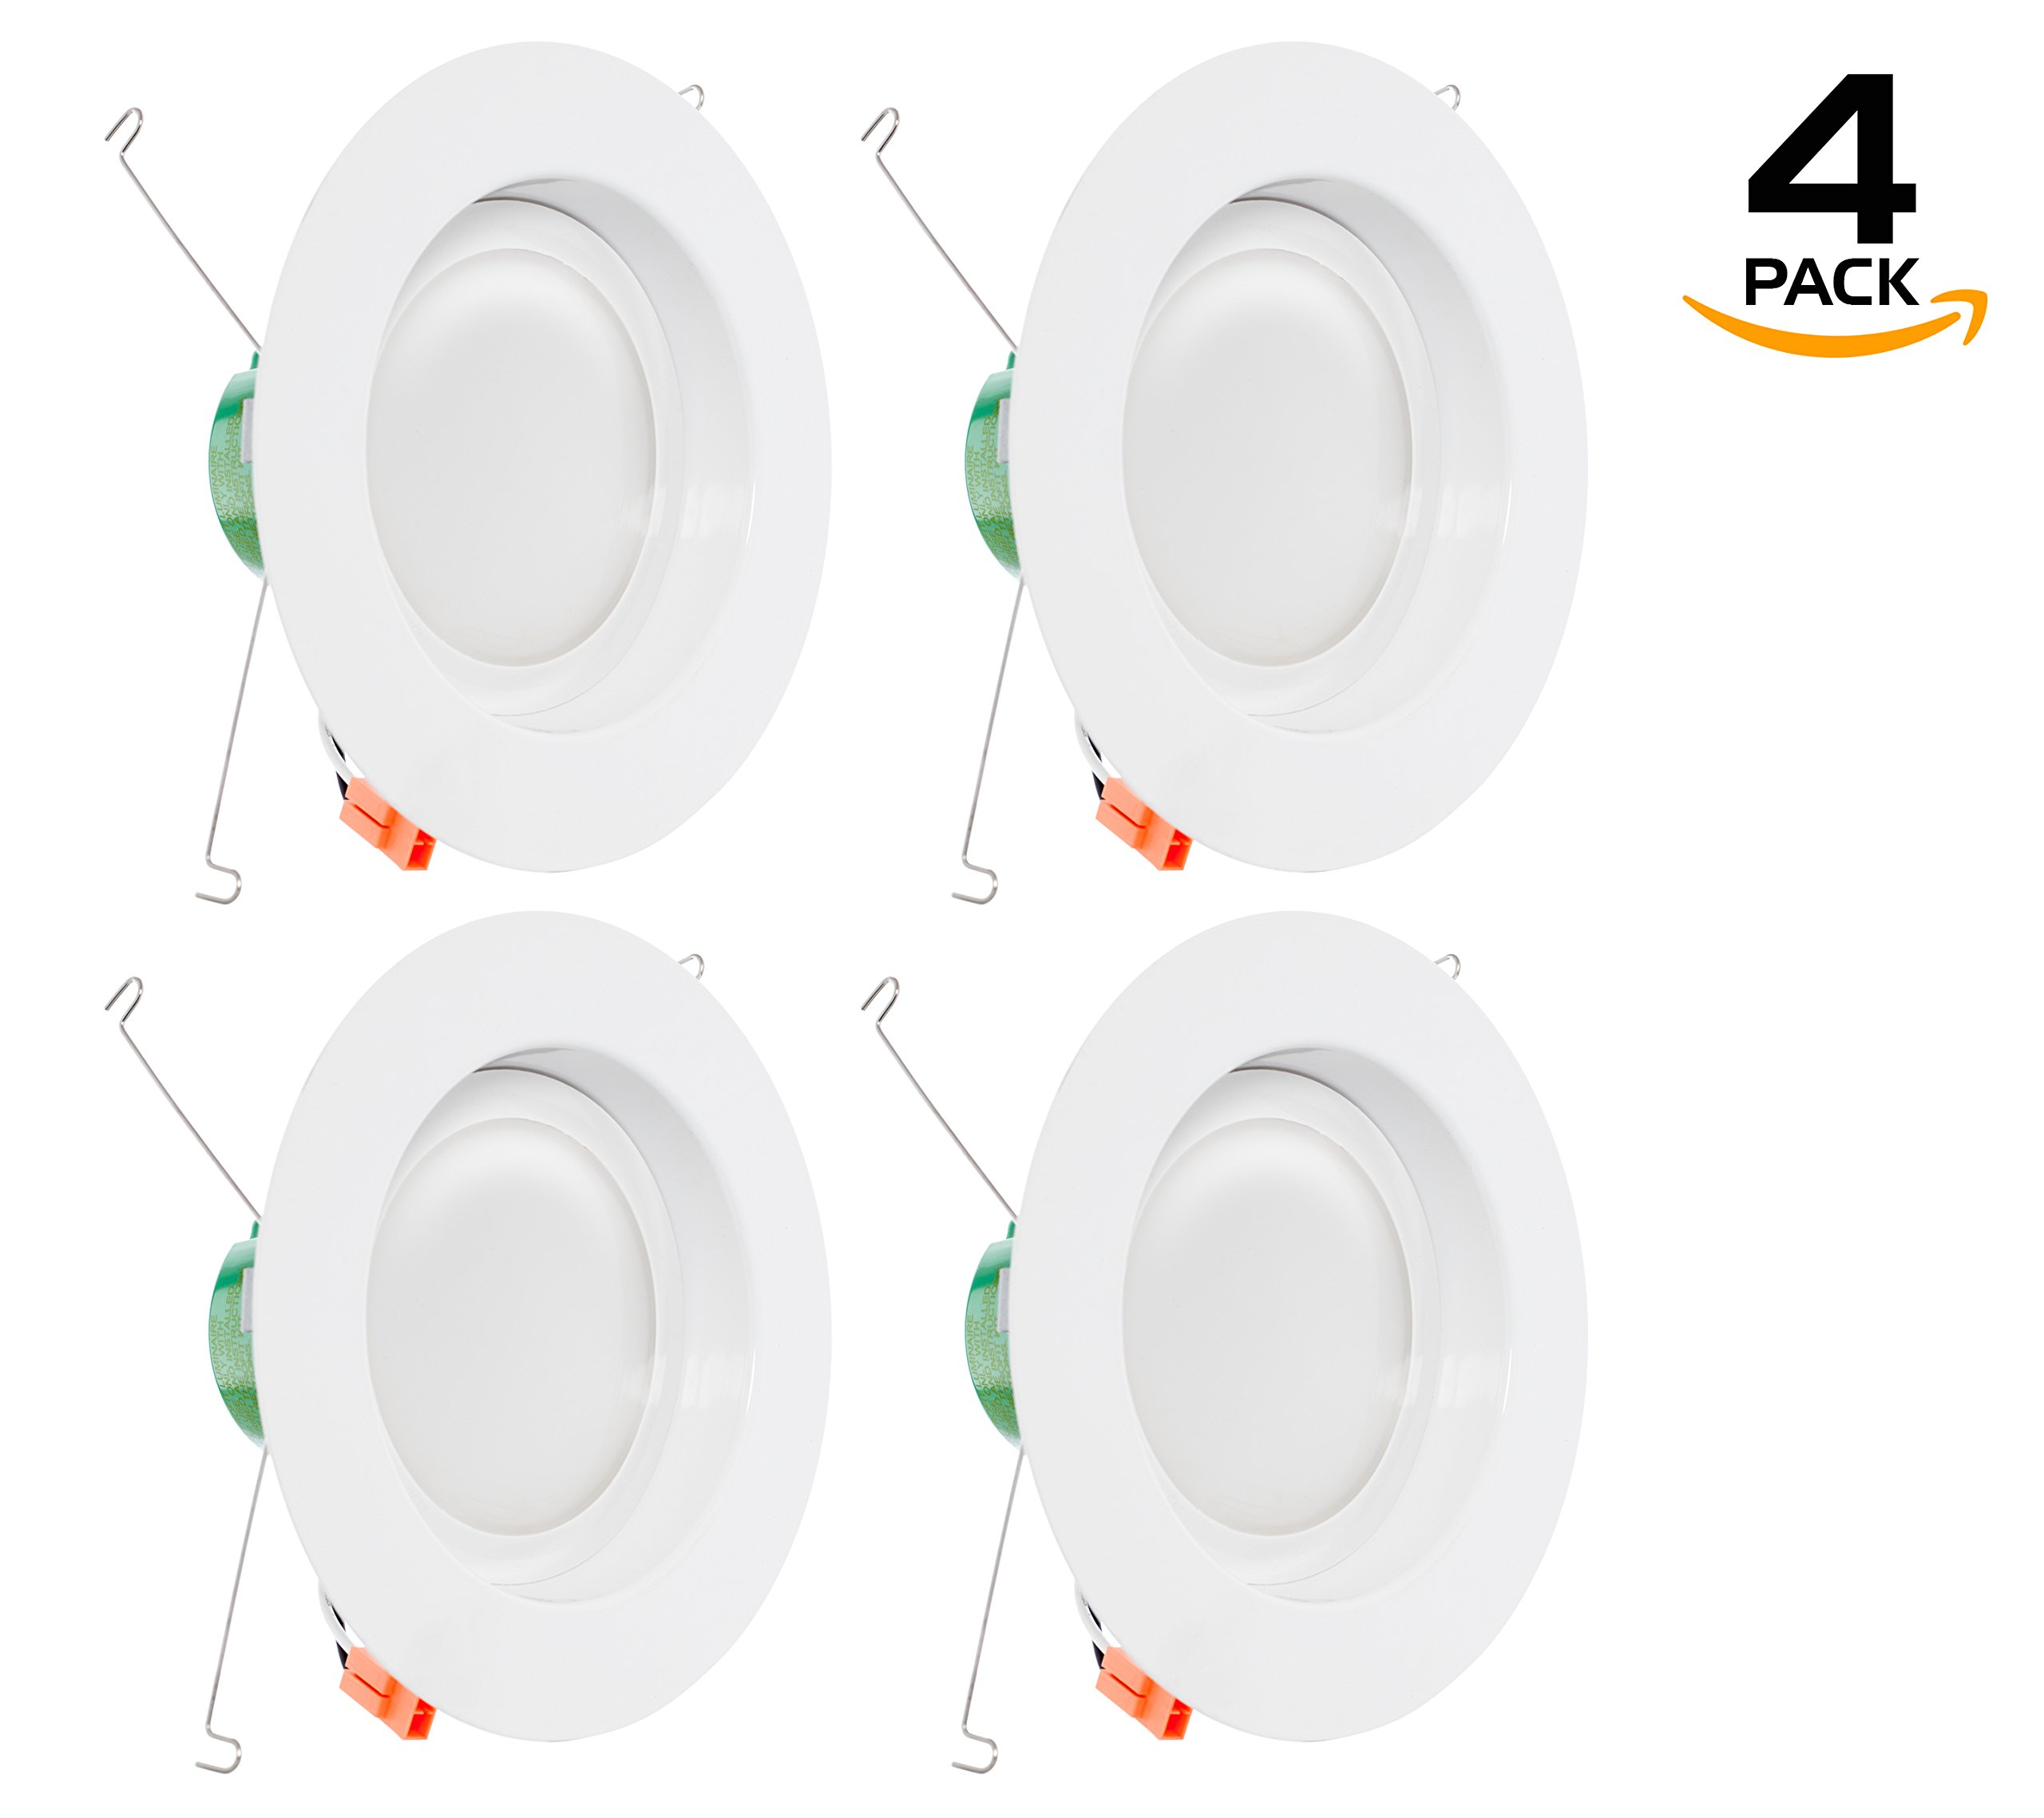 Westgate Lighting 19 Watt 6'' inch Recessed Lighting Kit Dimmable LED Retrofit Downlight with Integrated Smooth Trim 120V - 5 Year Warranty (4100K Cool White, 4 Pack)